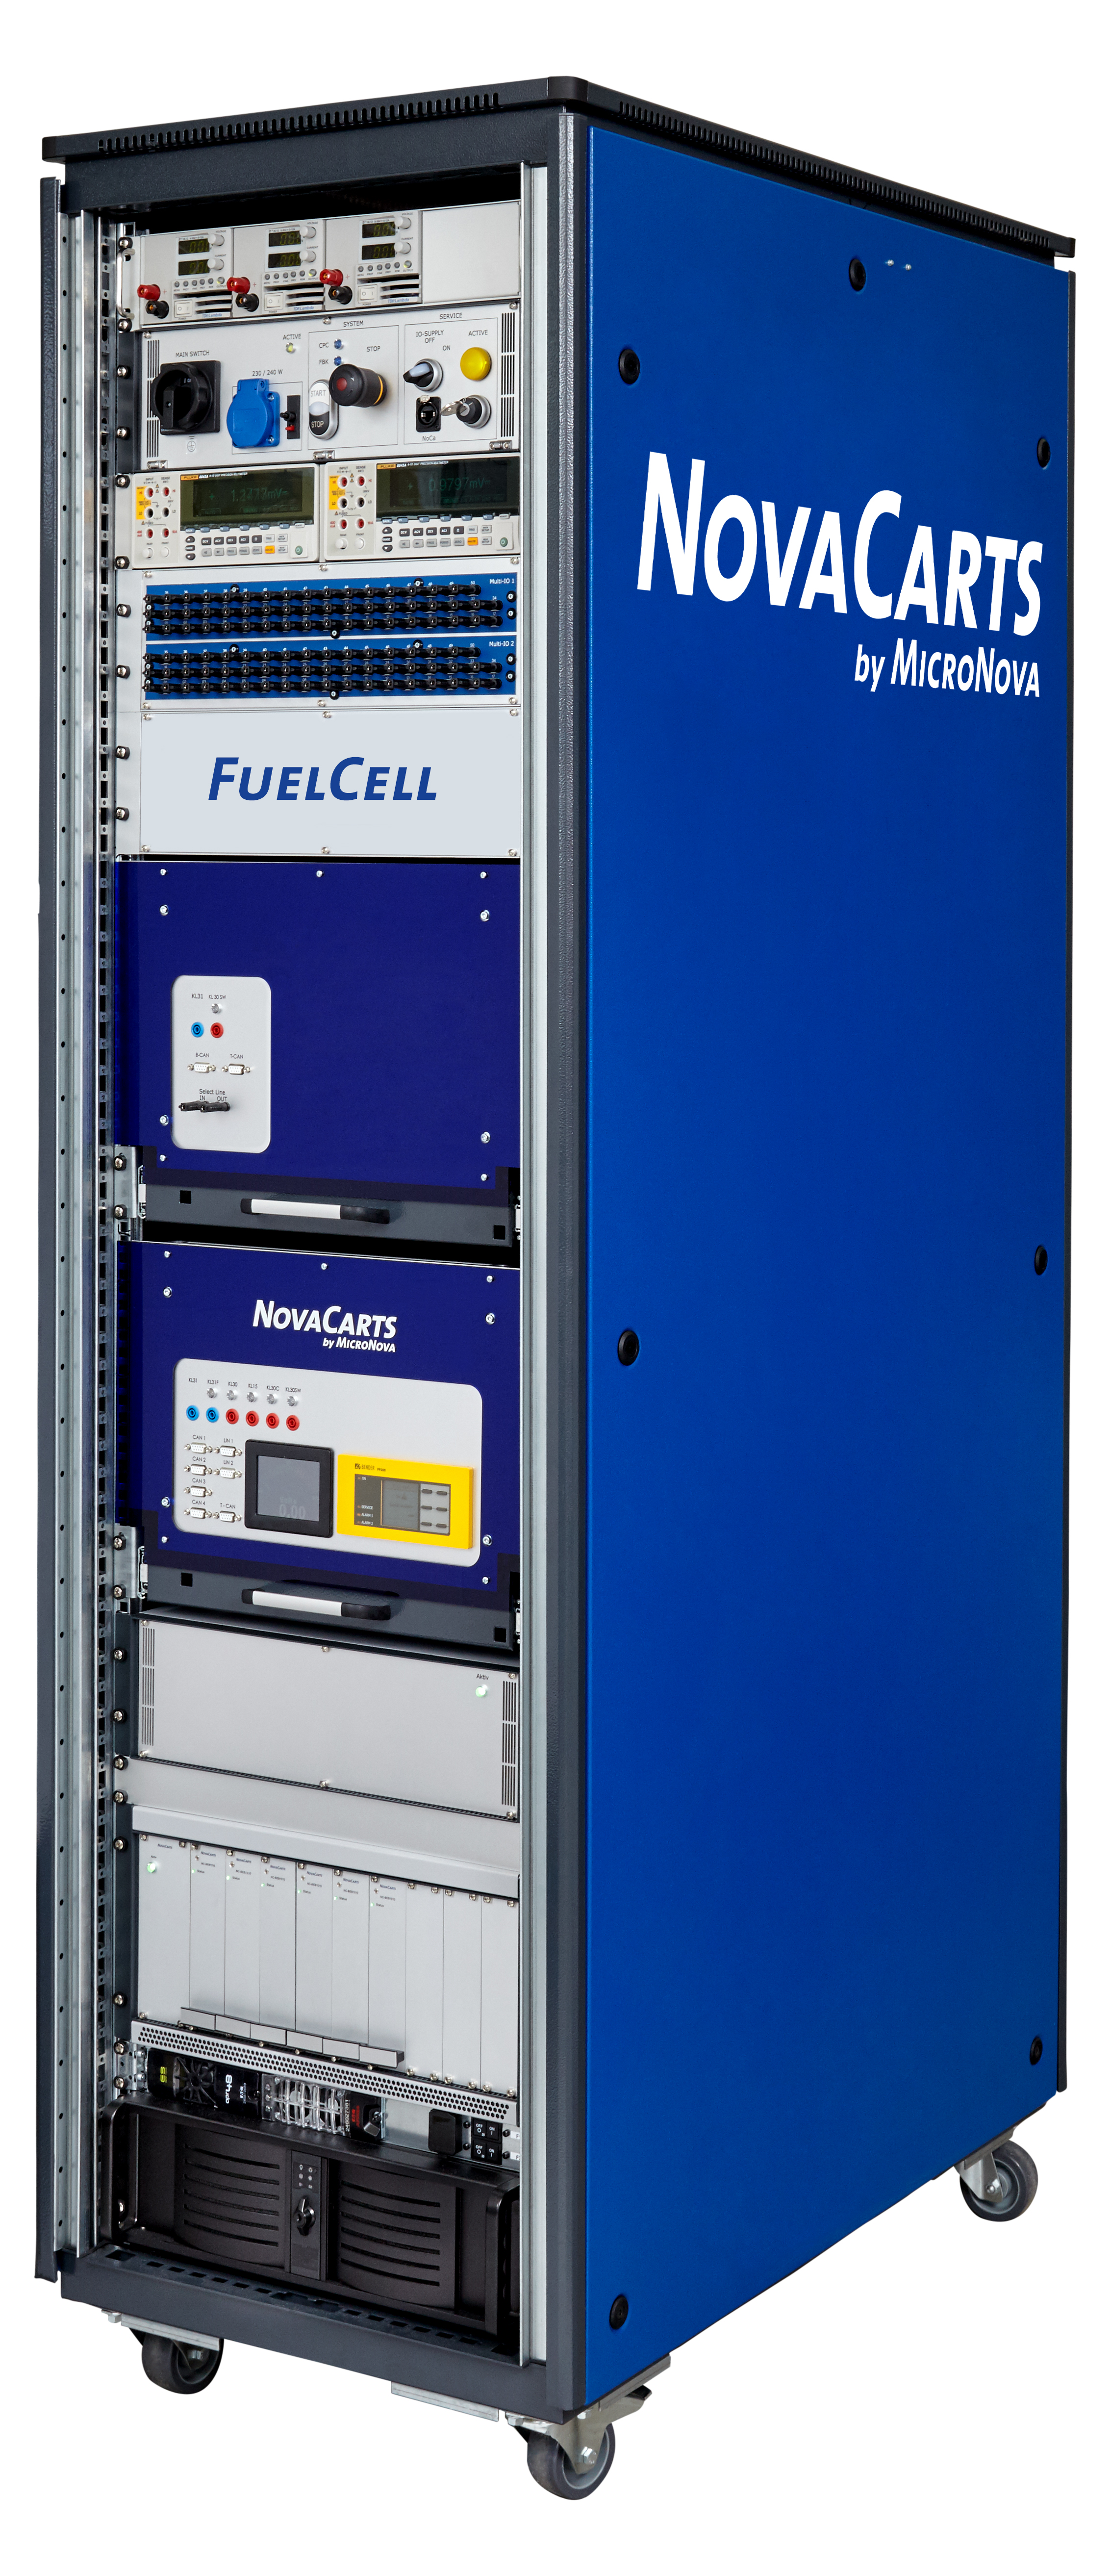 NovaCarts Fuel Cell